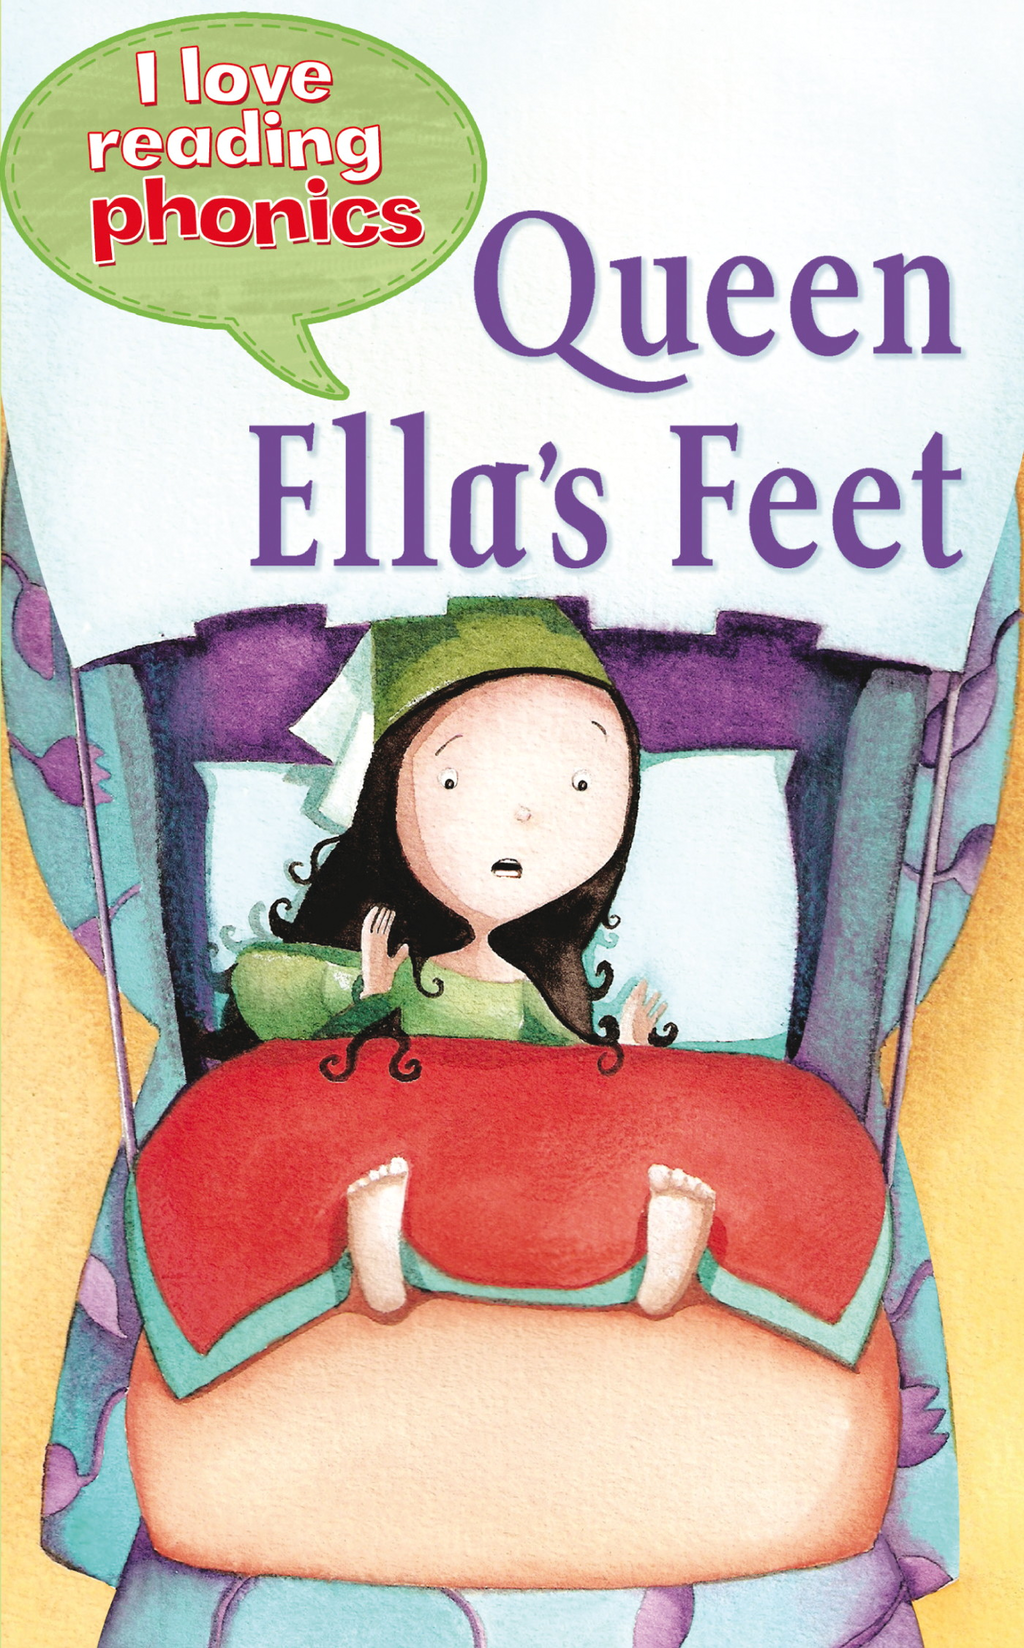 Queen Ella's Feet (I Love Reading Phonics Level 3)